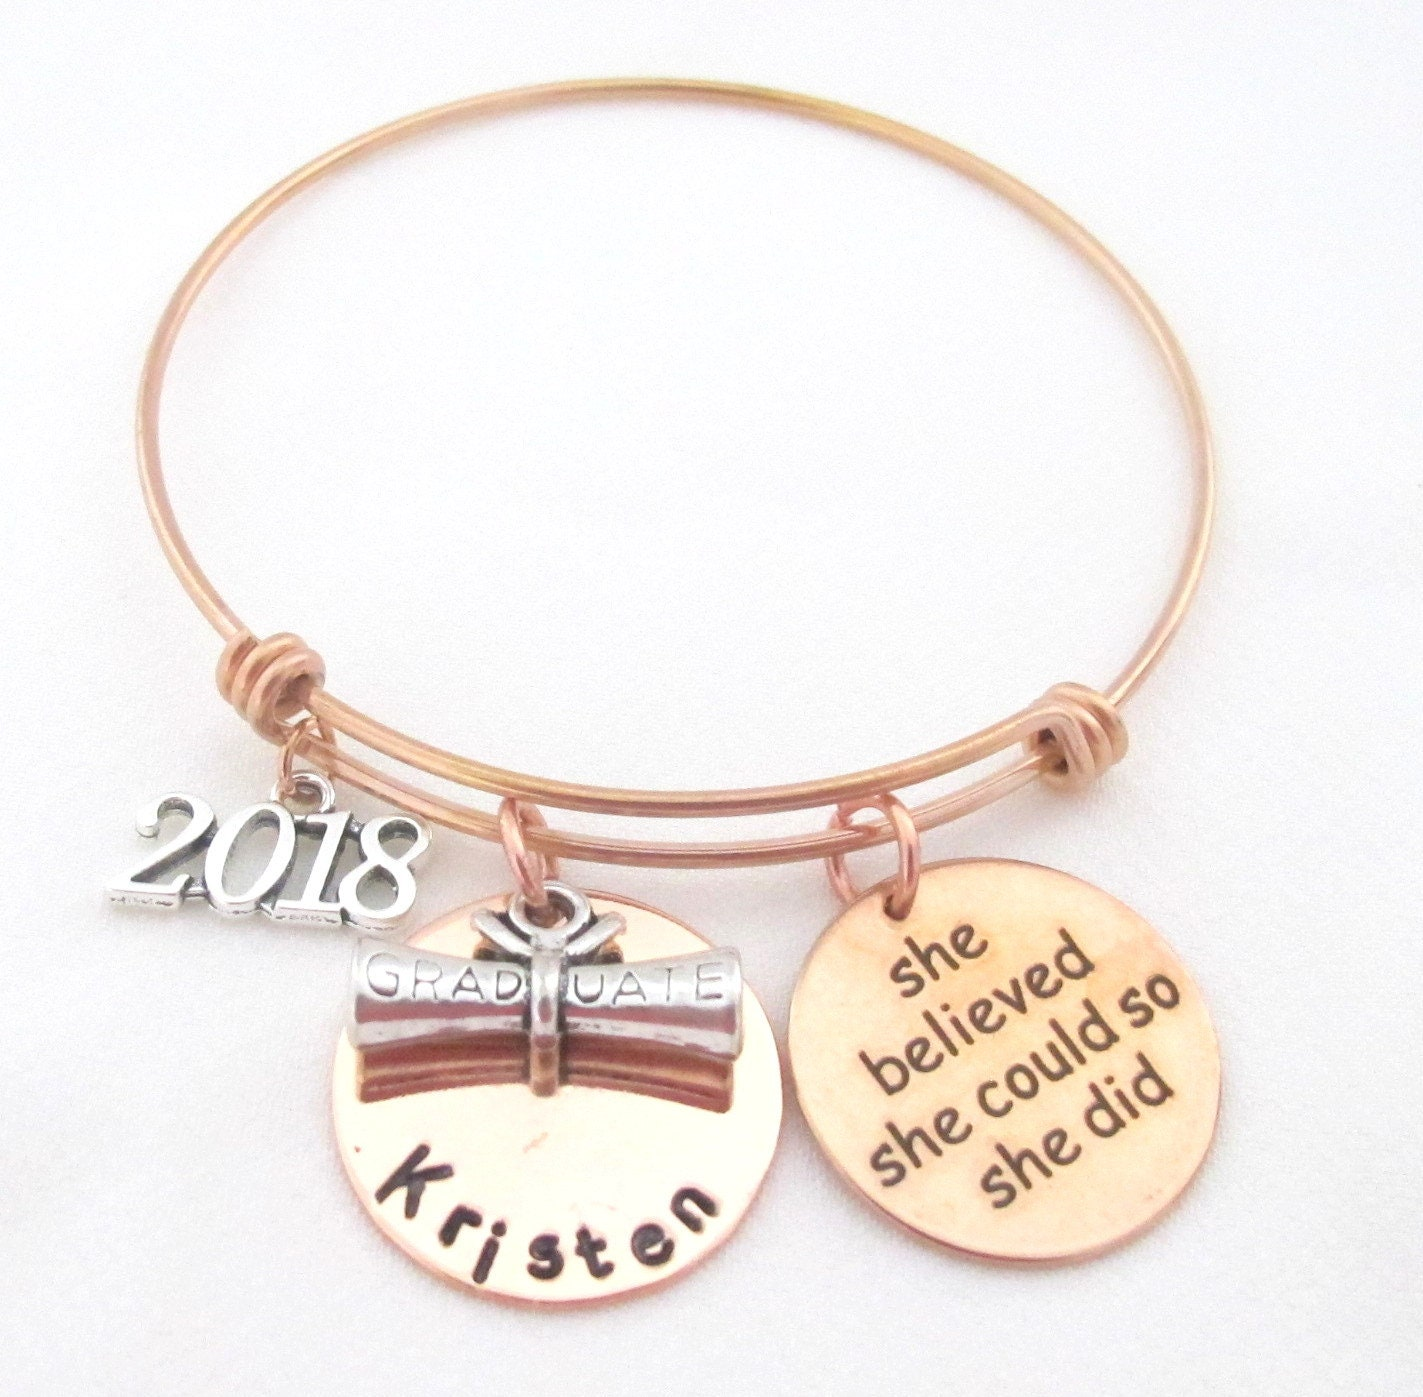 jewelry bracelet charm student teaching bangle for graduate education gift graduation pin teacher grad silver